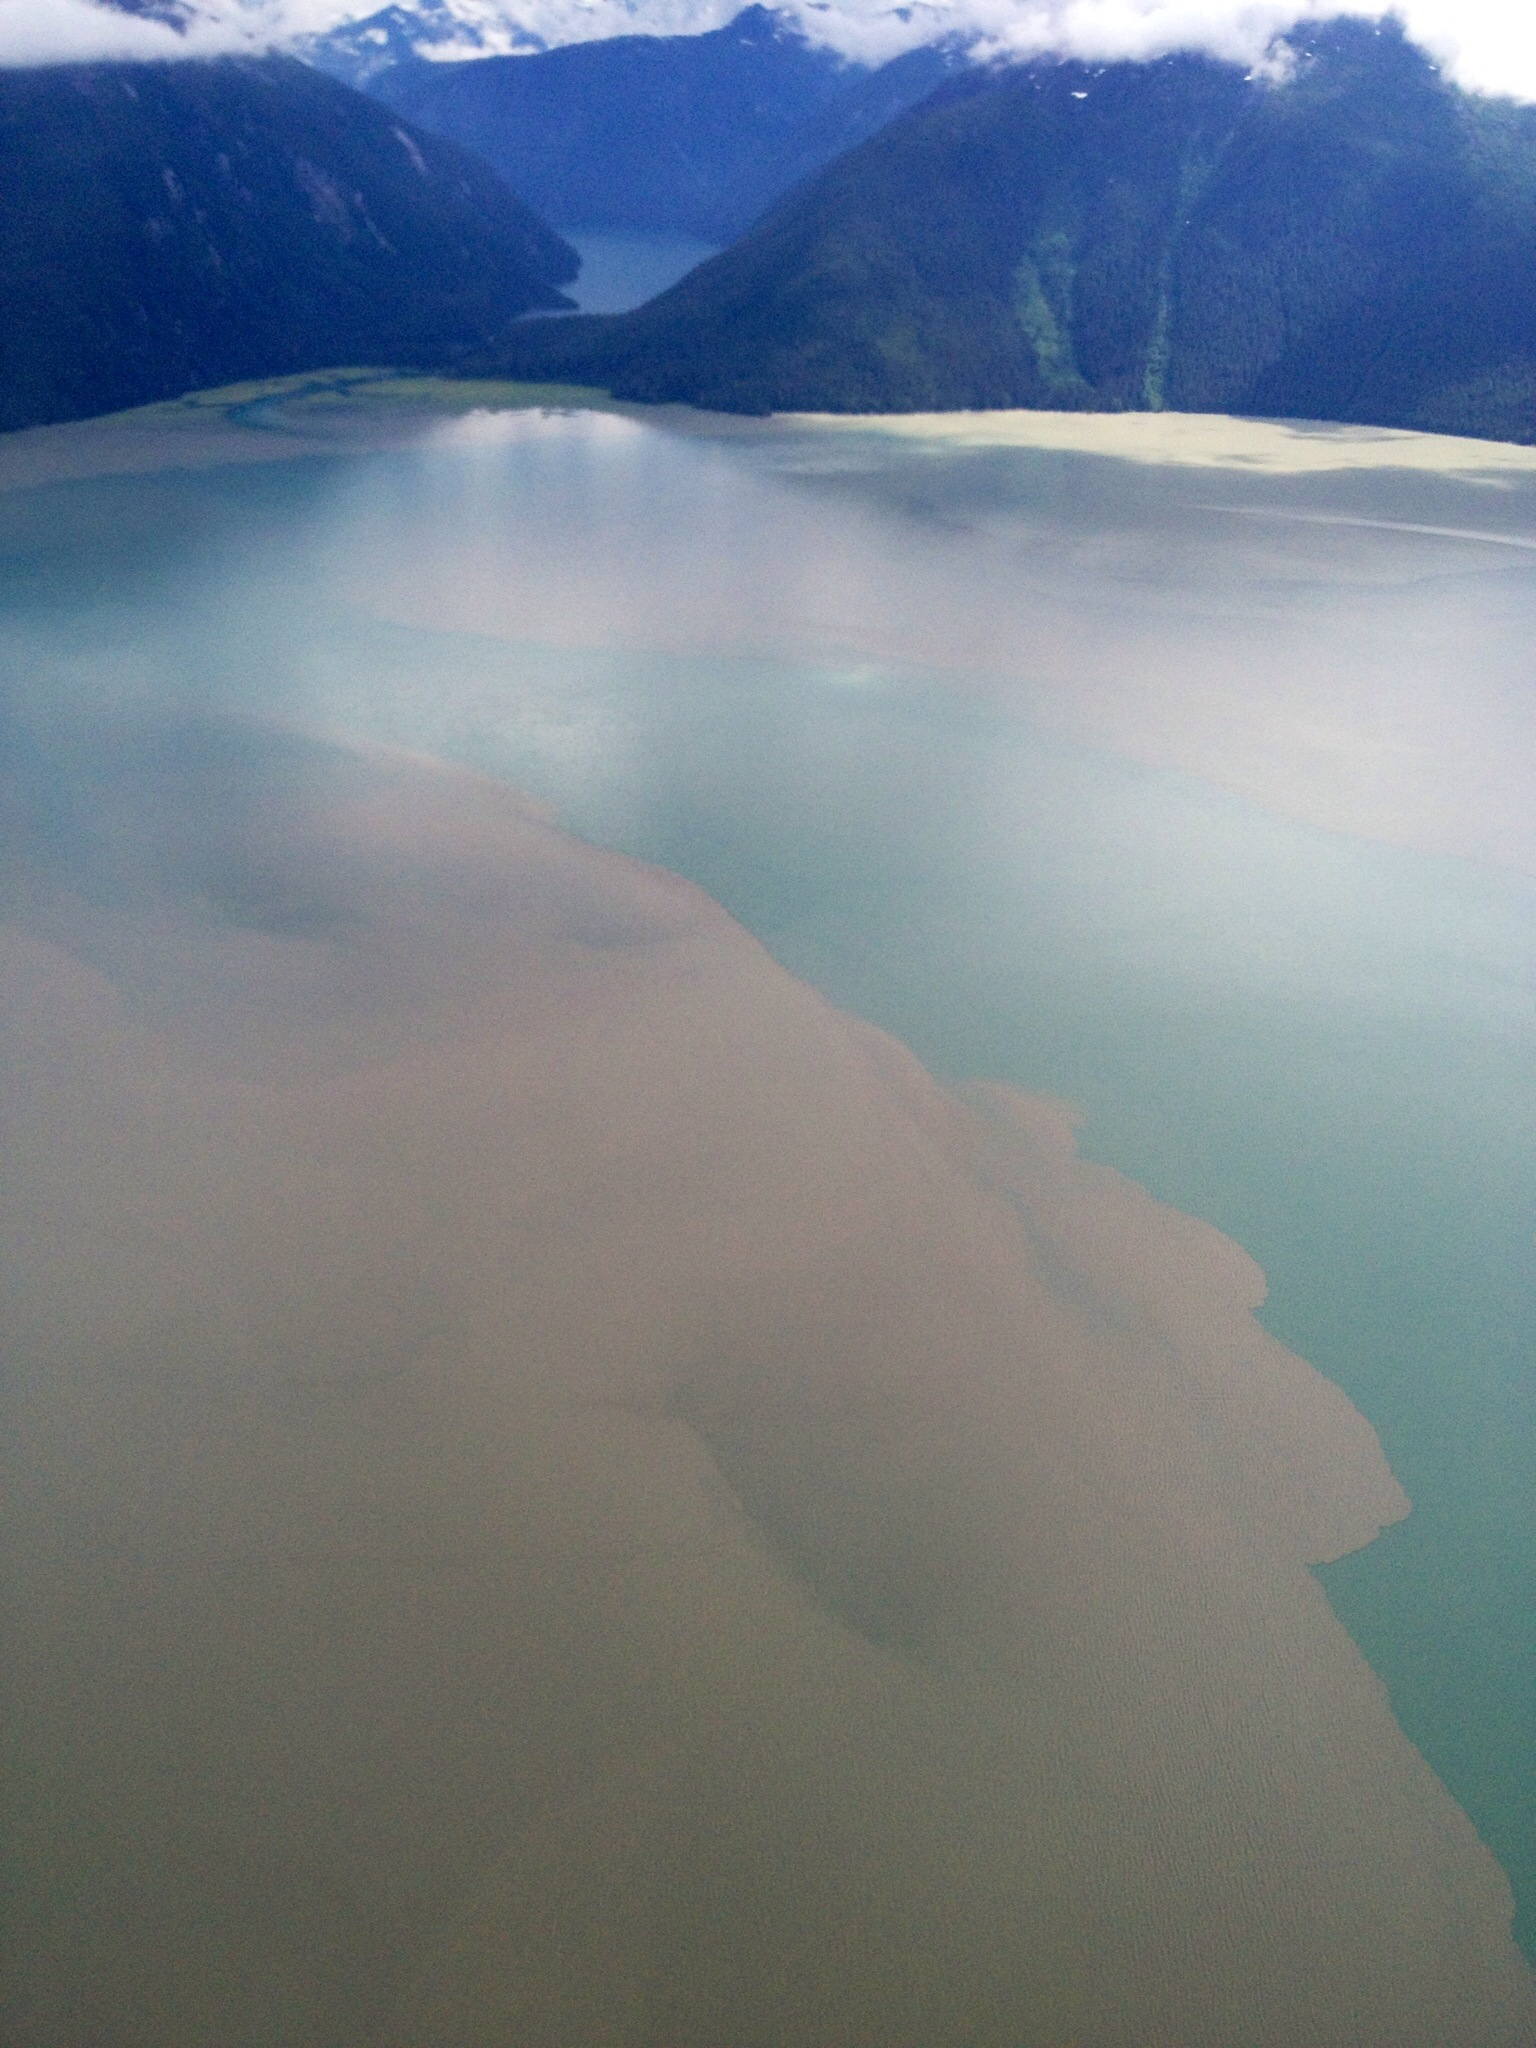 I loved the pale aqua color of the water against the ice from the air. Breathtaking.